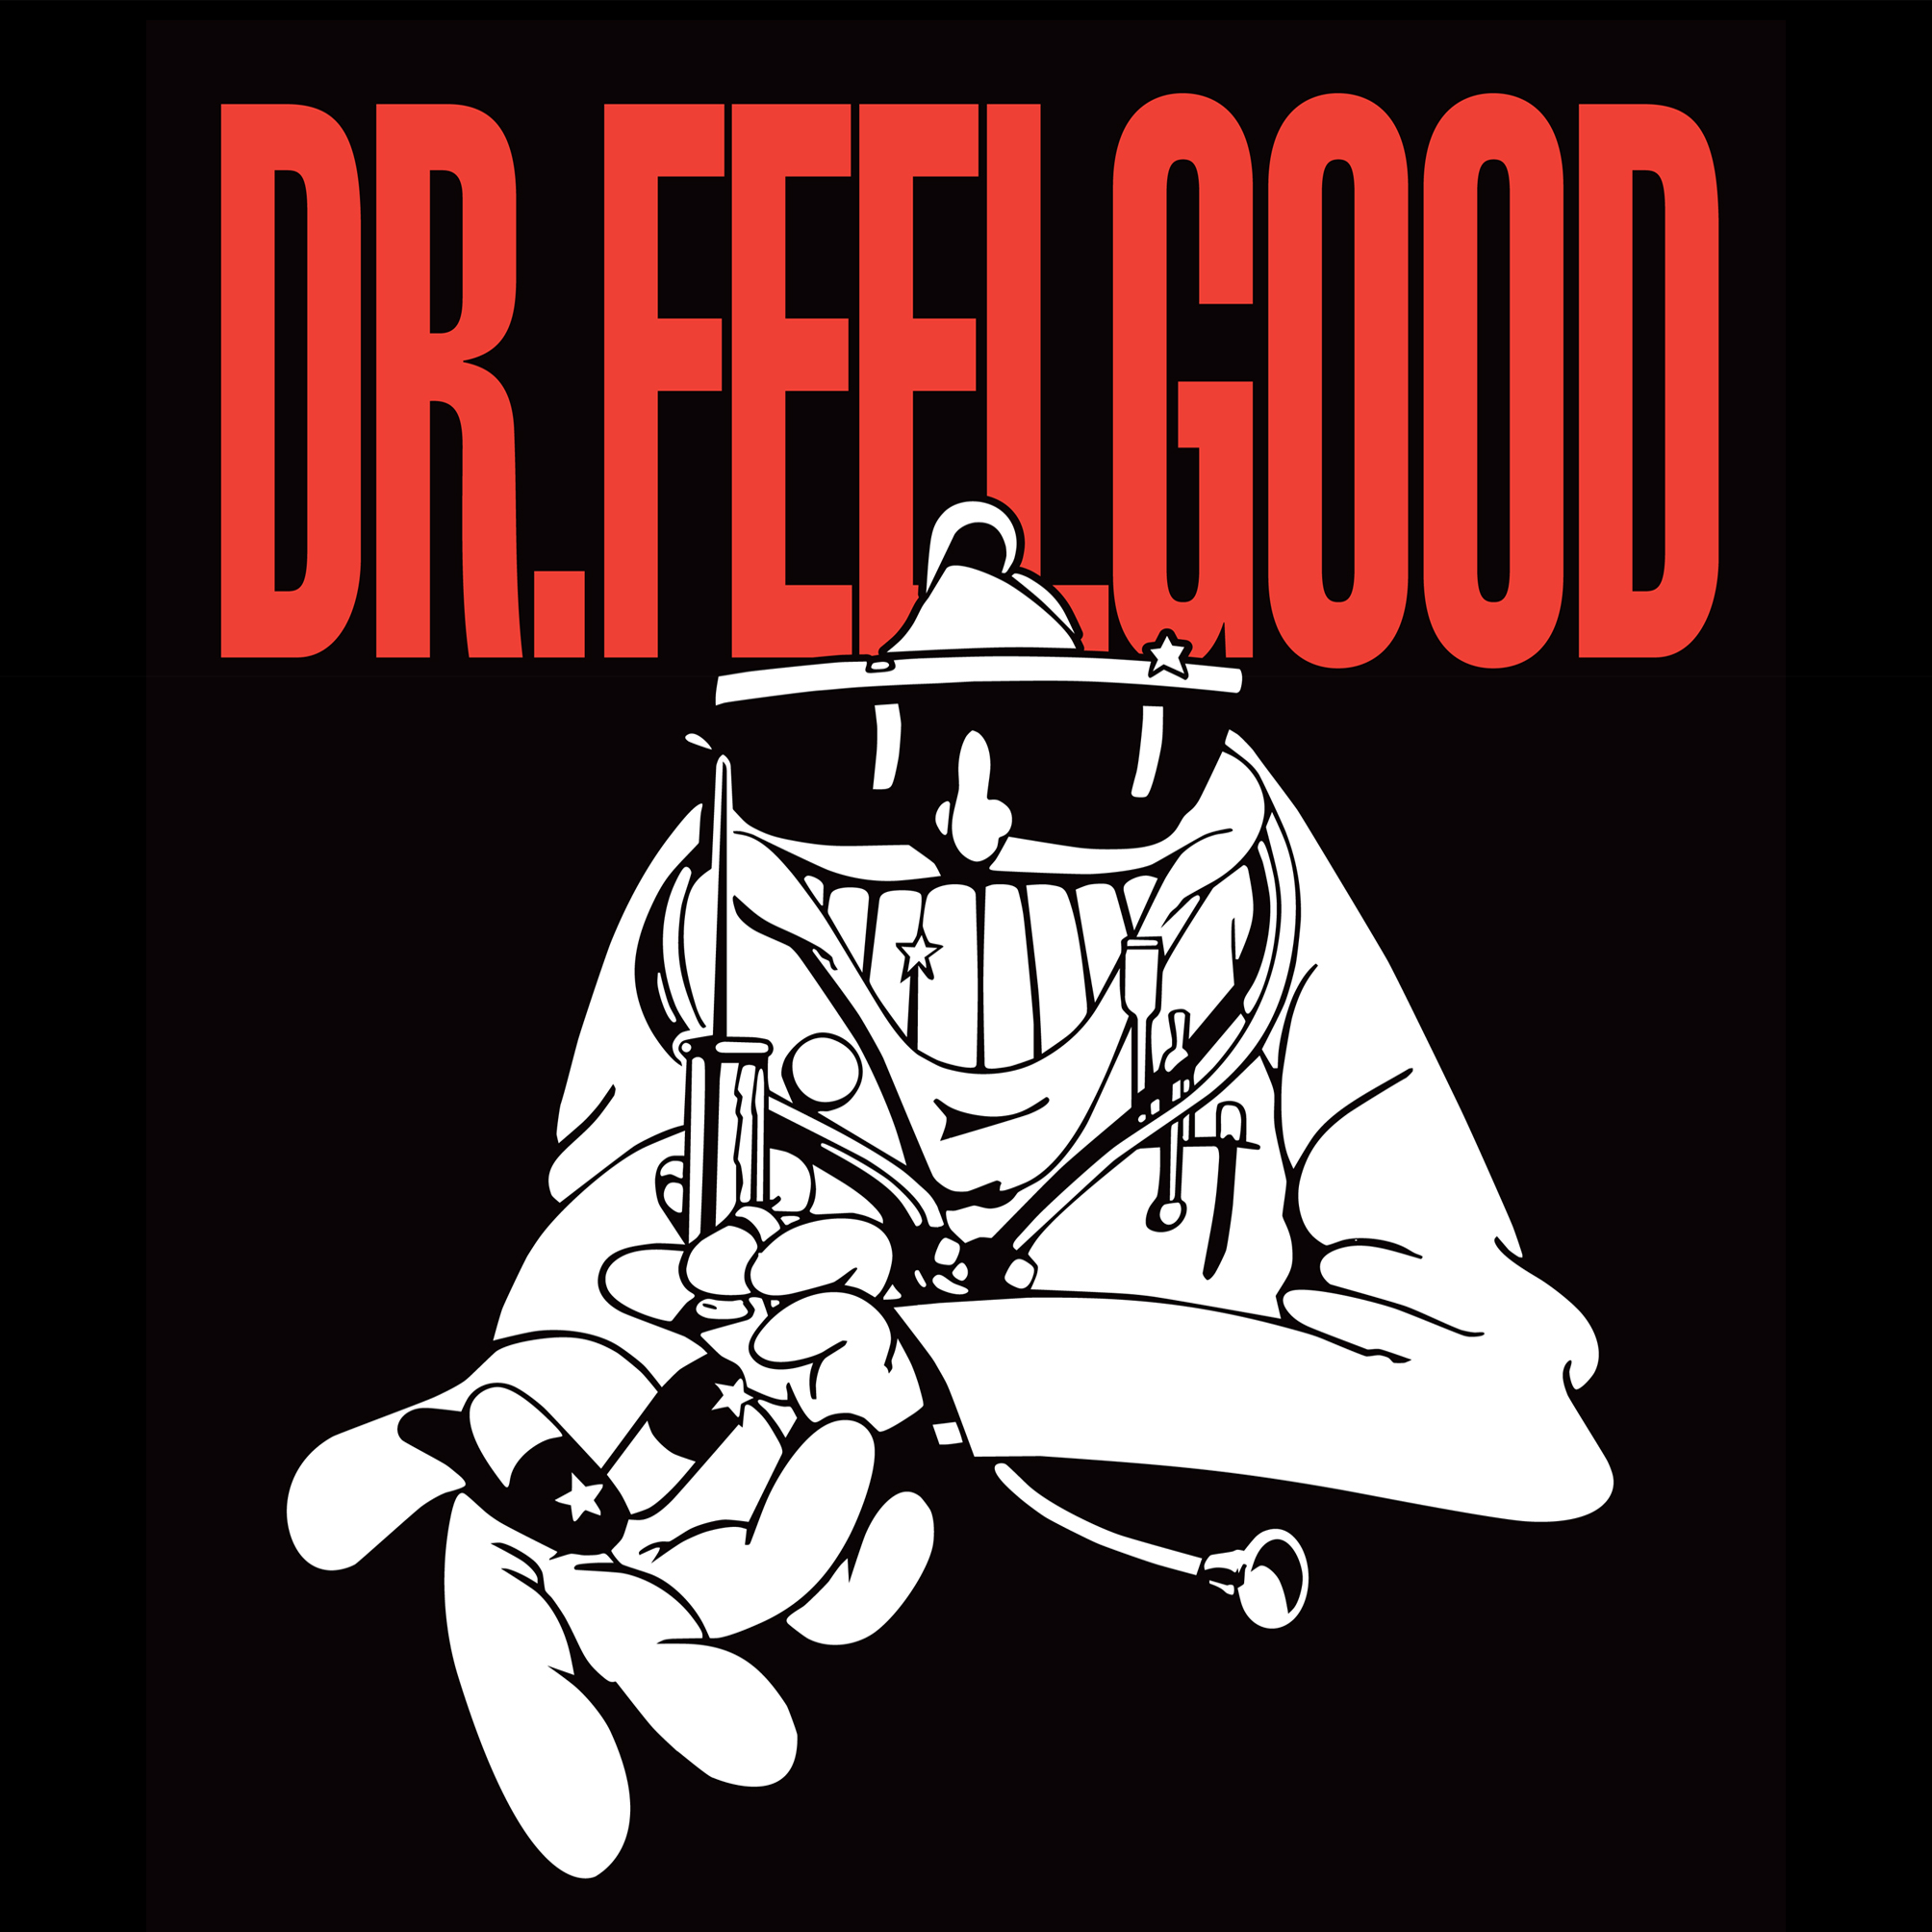 Dr Feel Good